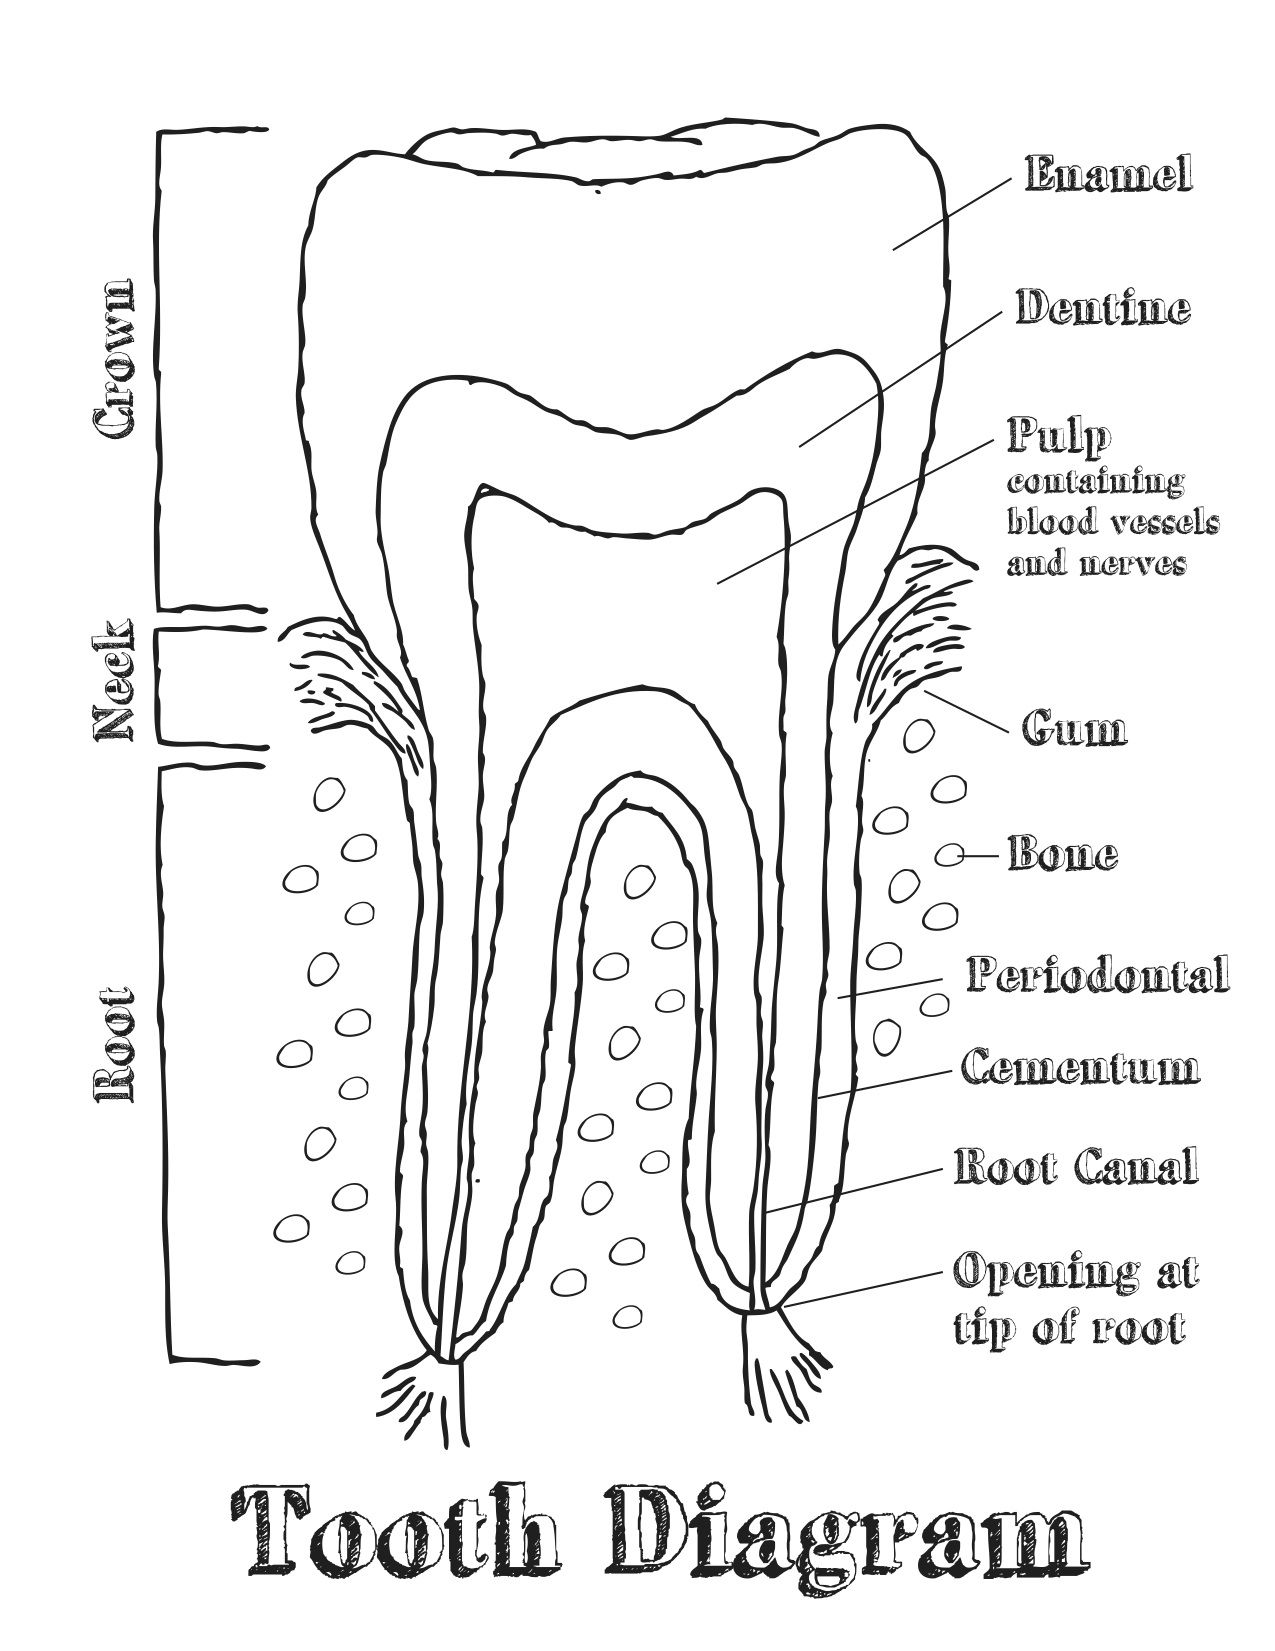 diagram of tooth anatomy dental tooth chart diagram - yahoo image search results ...